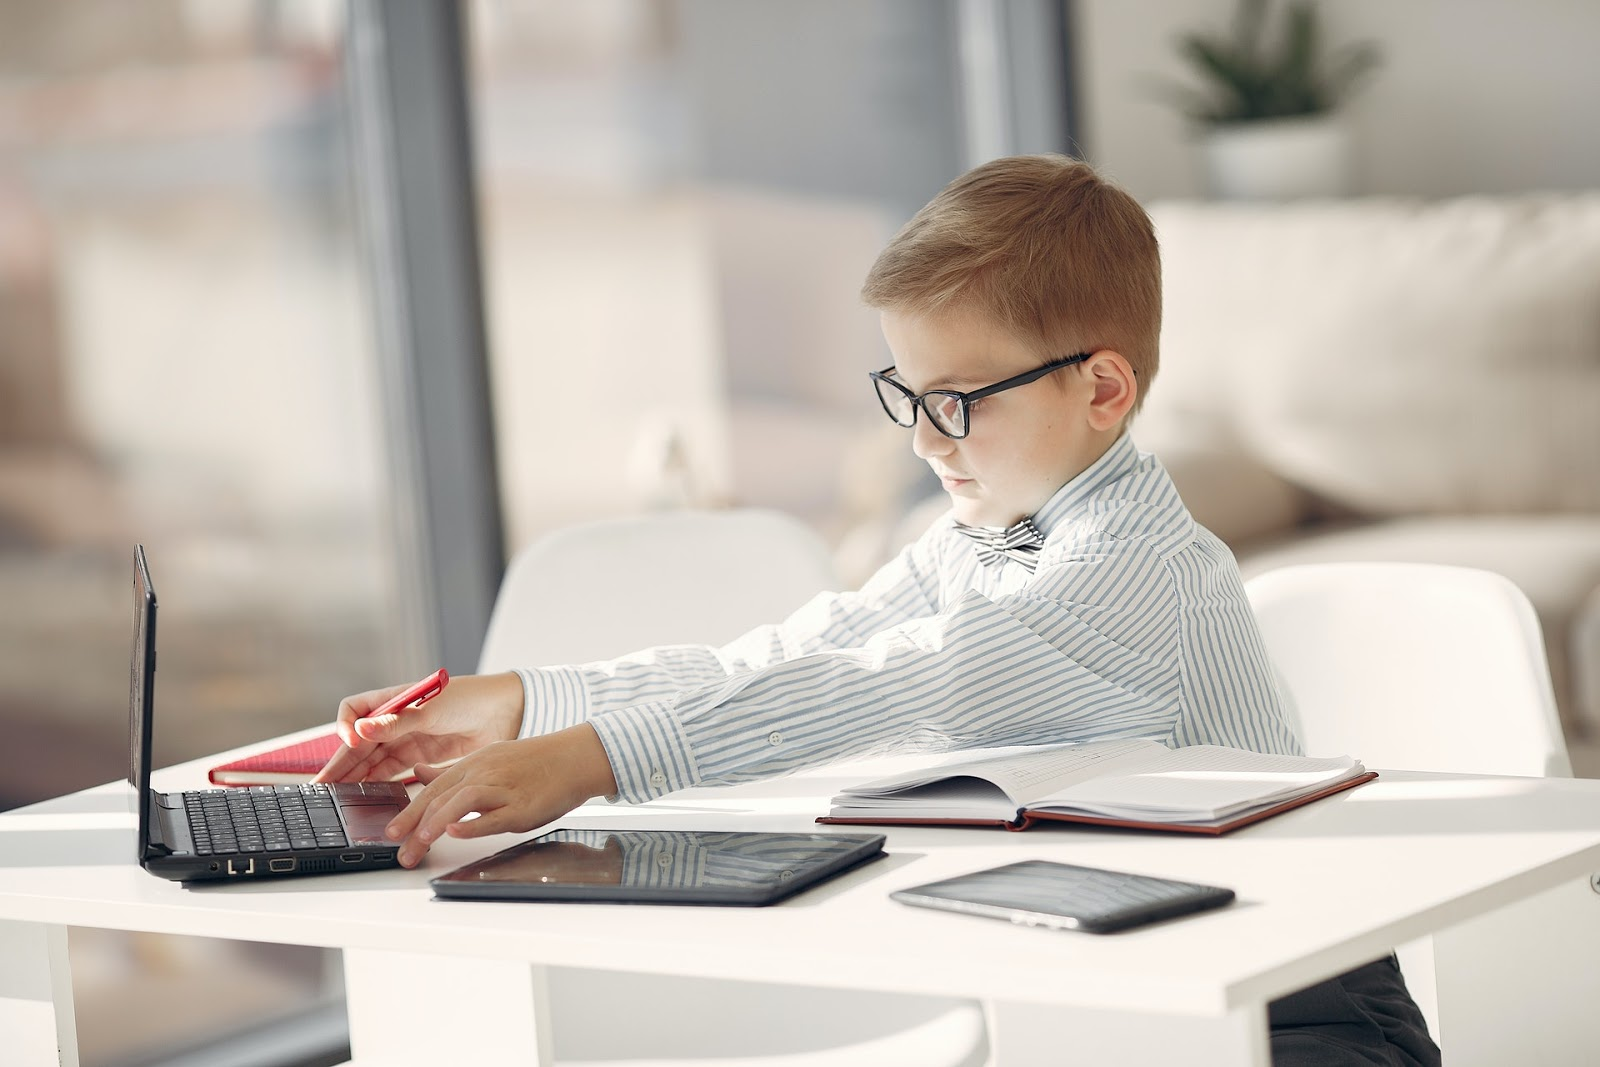 boy with glasses opening laptop